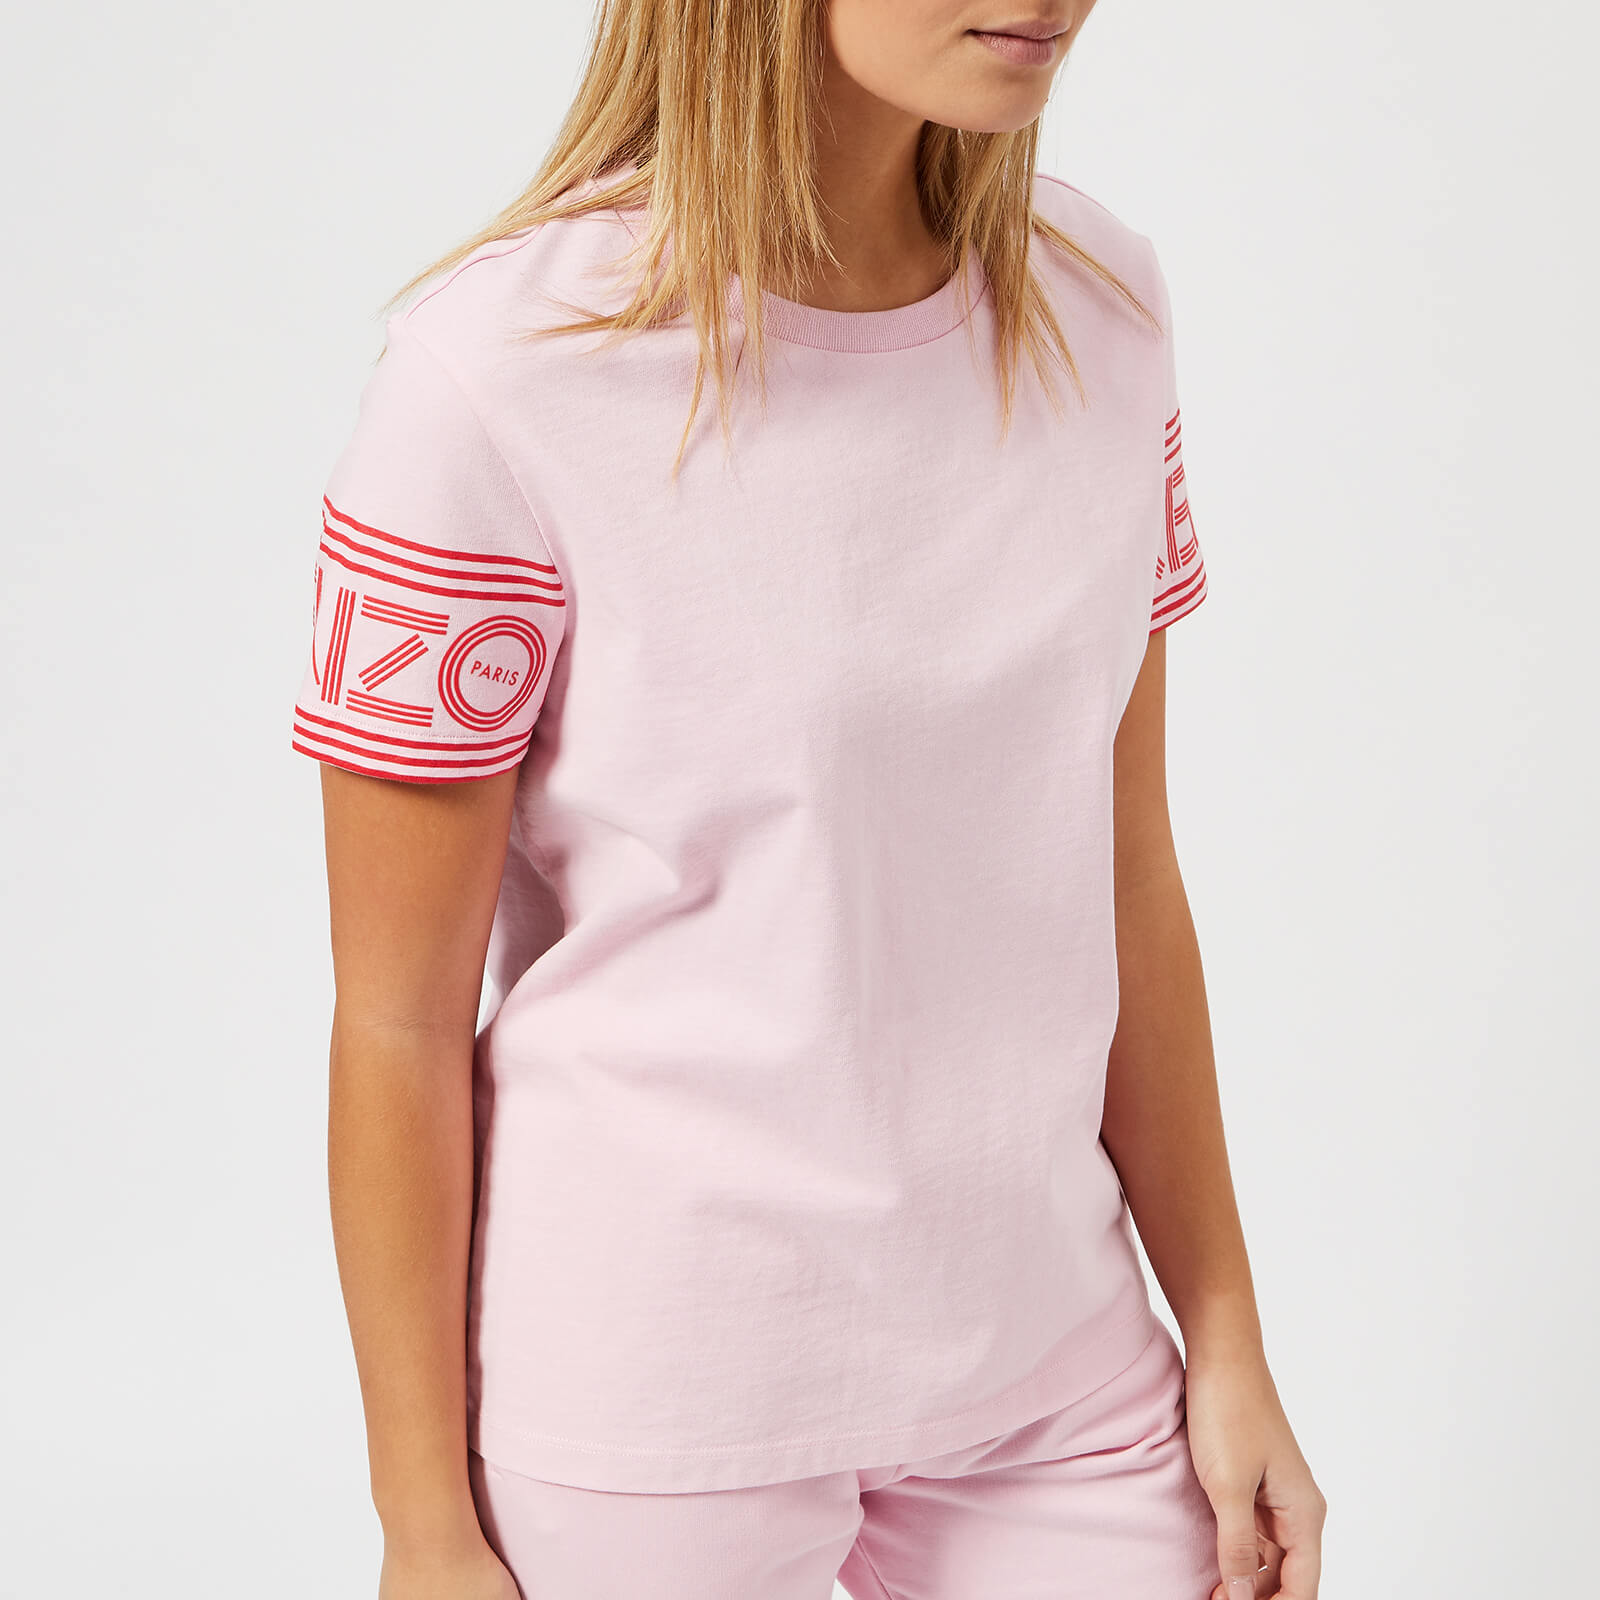 123995f56ab4 KENZO Women's Cotton Skate Jersey T-Shirt - Flamingo Pink - Free UK  Delivery over £50